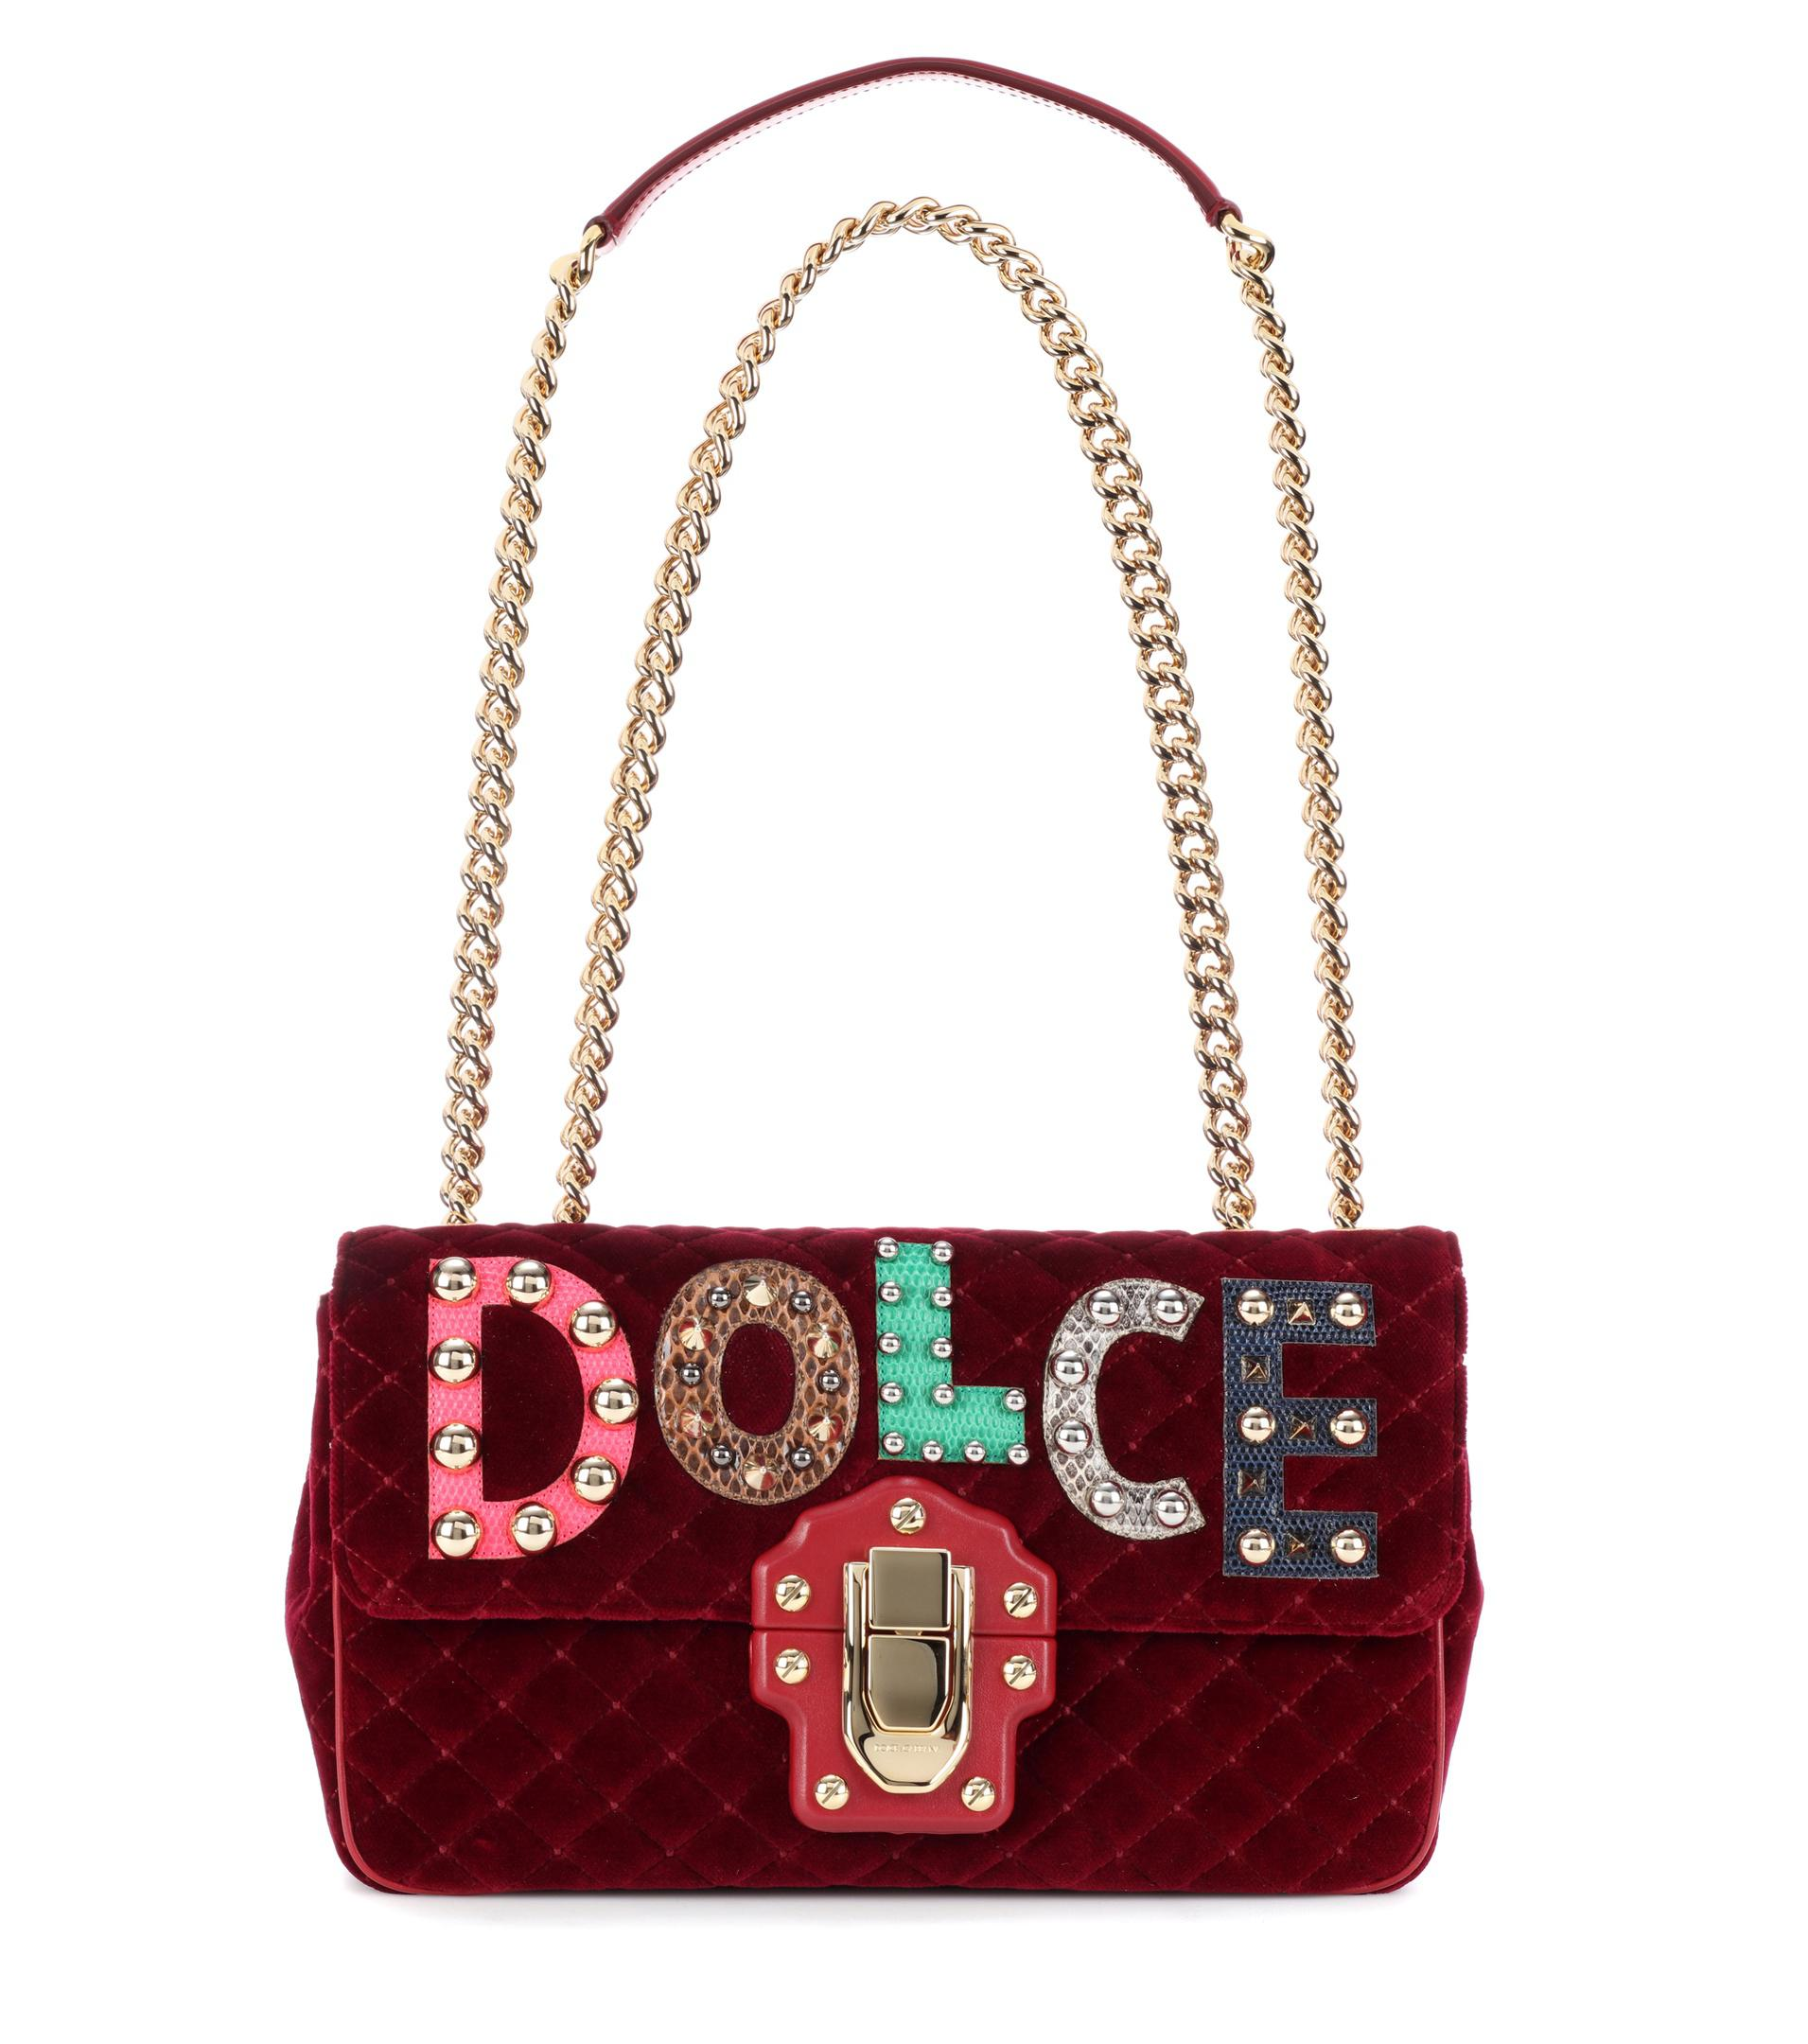 Dolce   Gabbana Lucia Leather And Velvet Shoulder Bag in Red - Lyst 29c51607bdbee